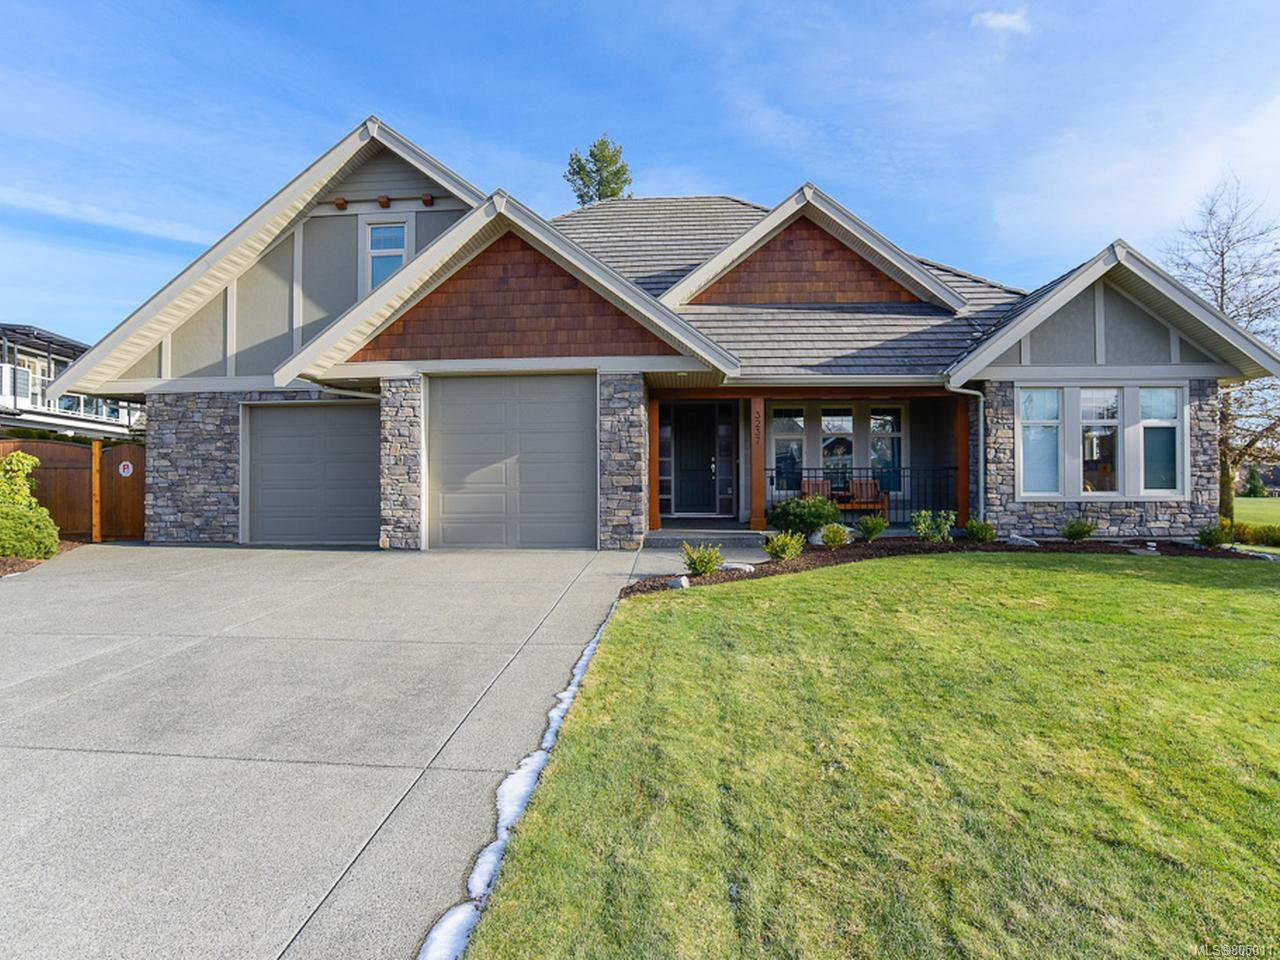 Main Photo: 3237 MAJESTIC DRIVE in COURTENAY: CV Crown Isle House for sale (Comox Valley)  : MLS®# 805011